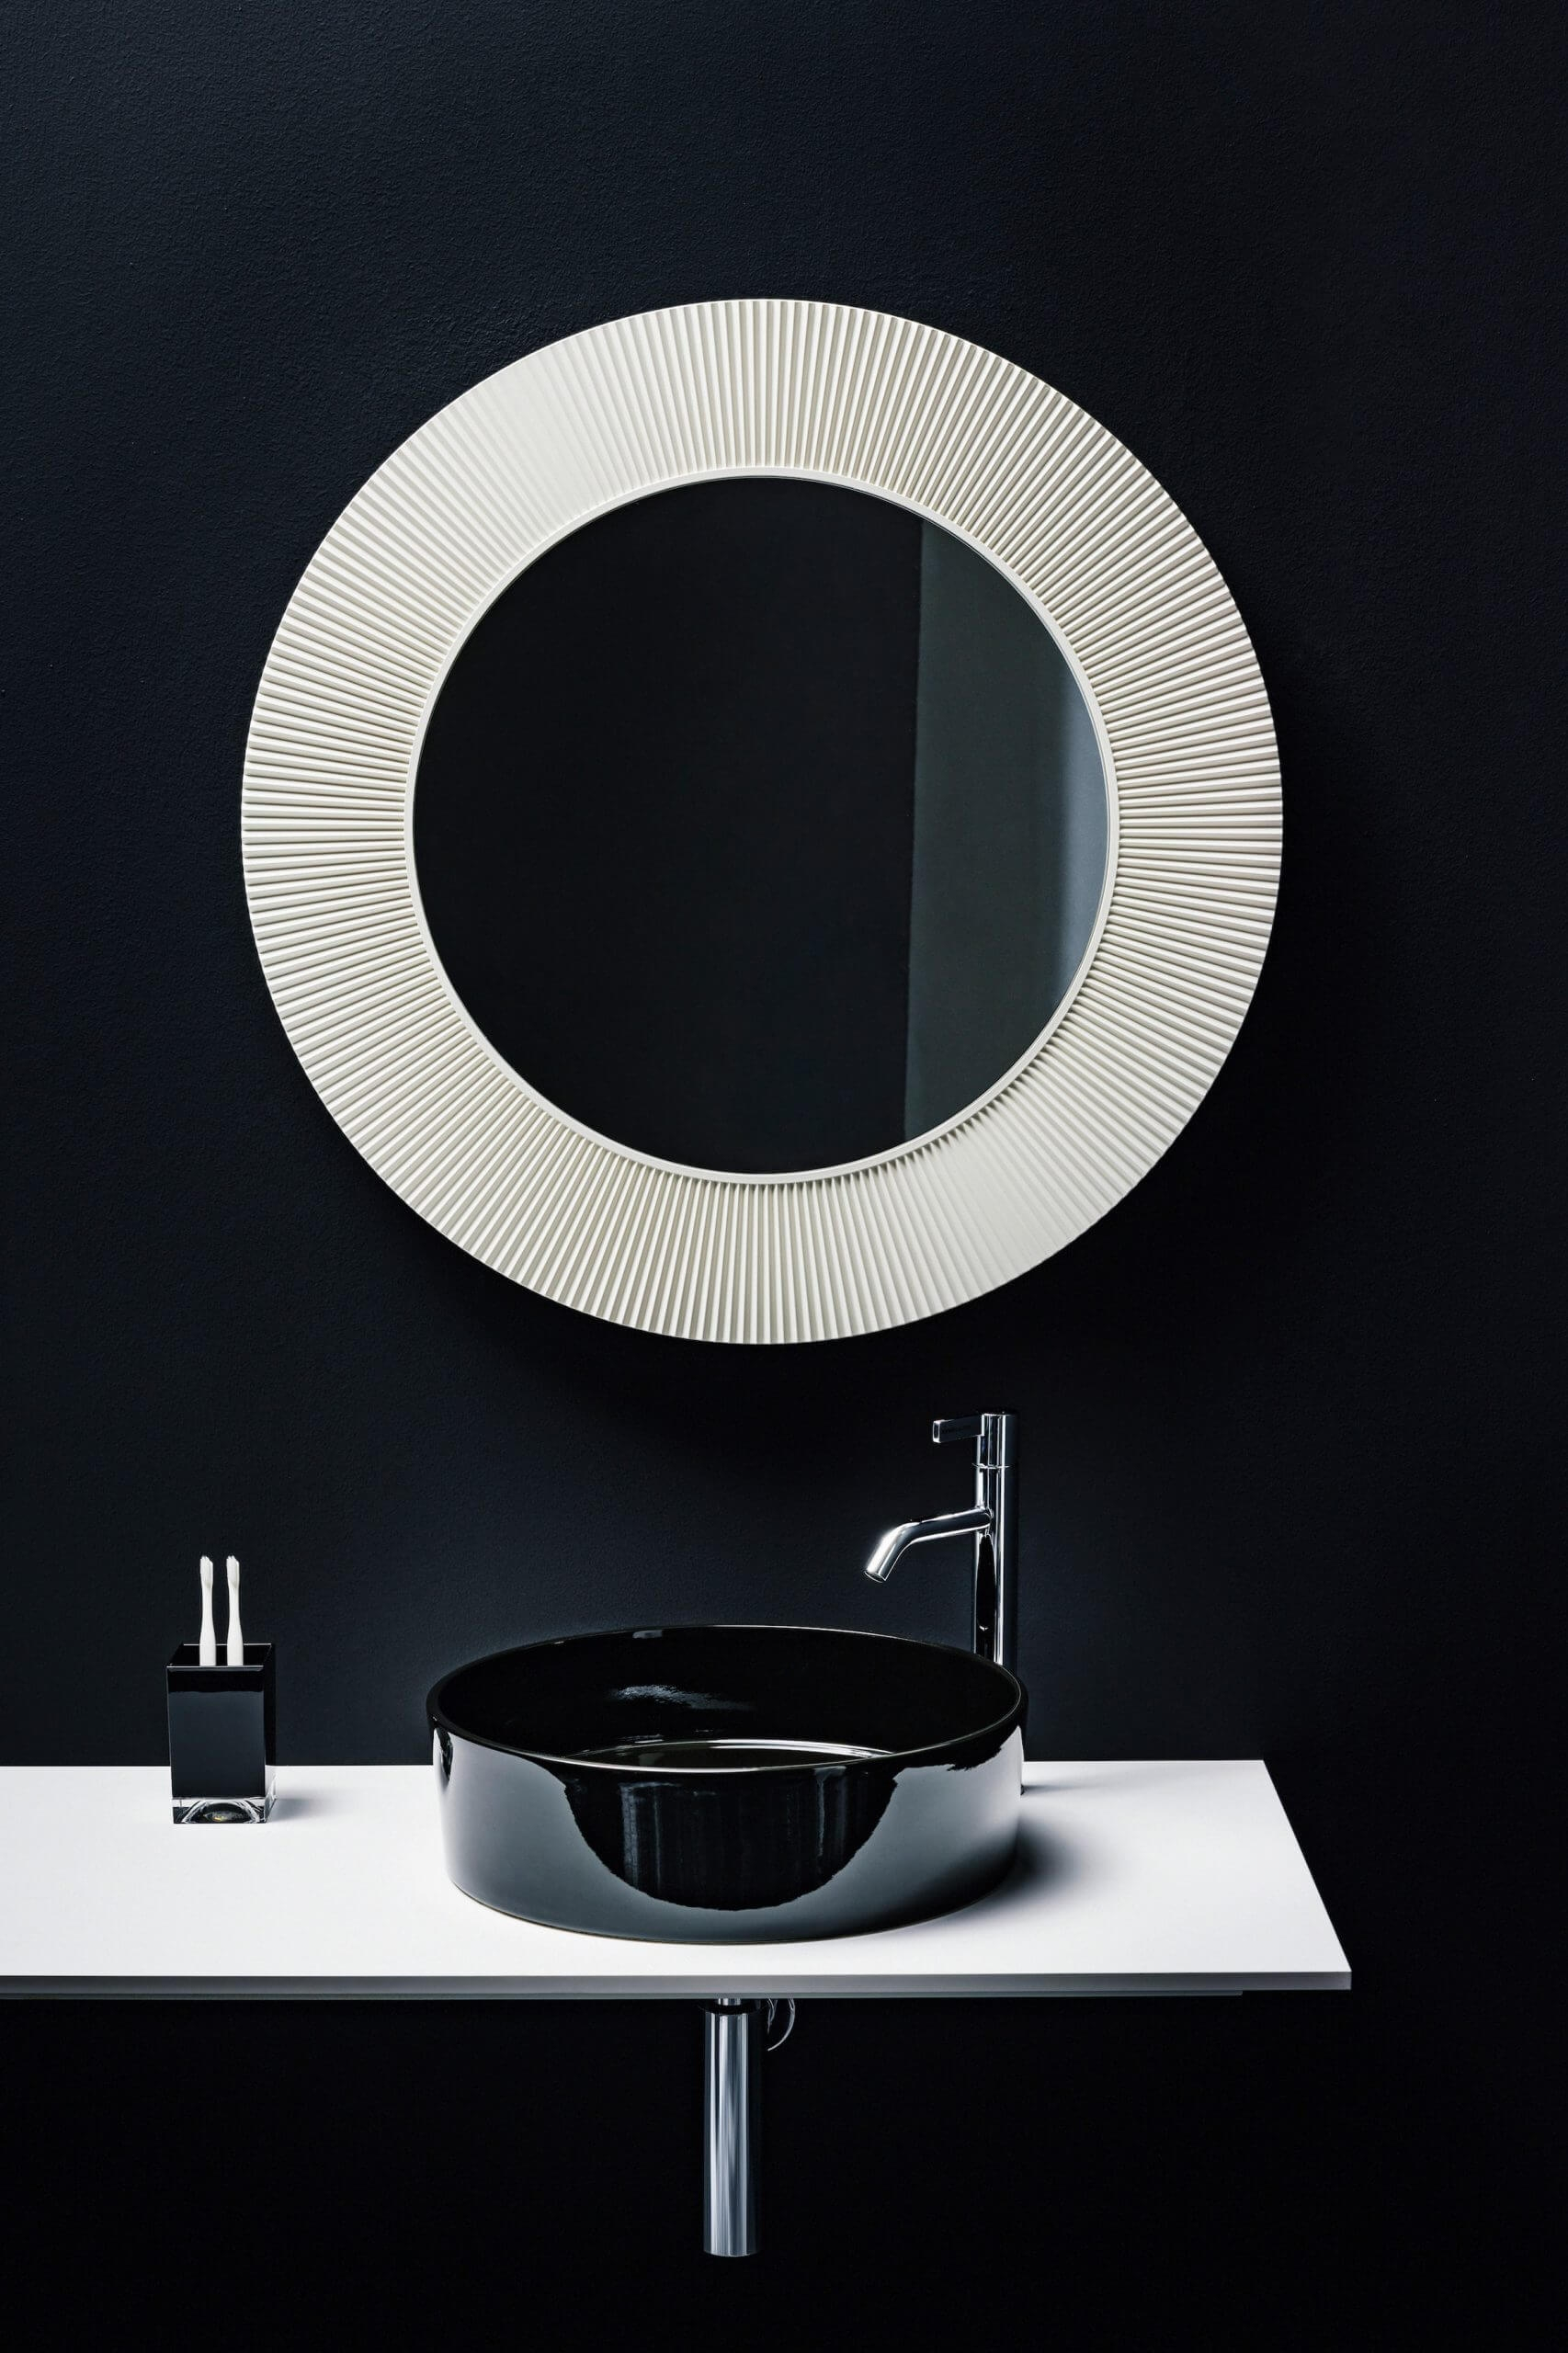 kartell by laufen bathroom products promotion dezeen 2364 col 13 scaled 1